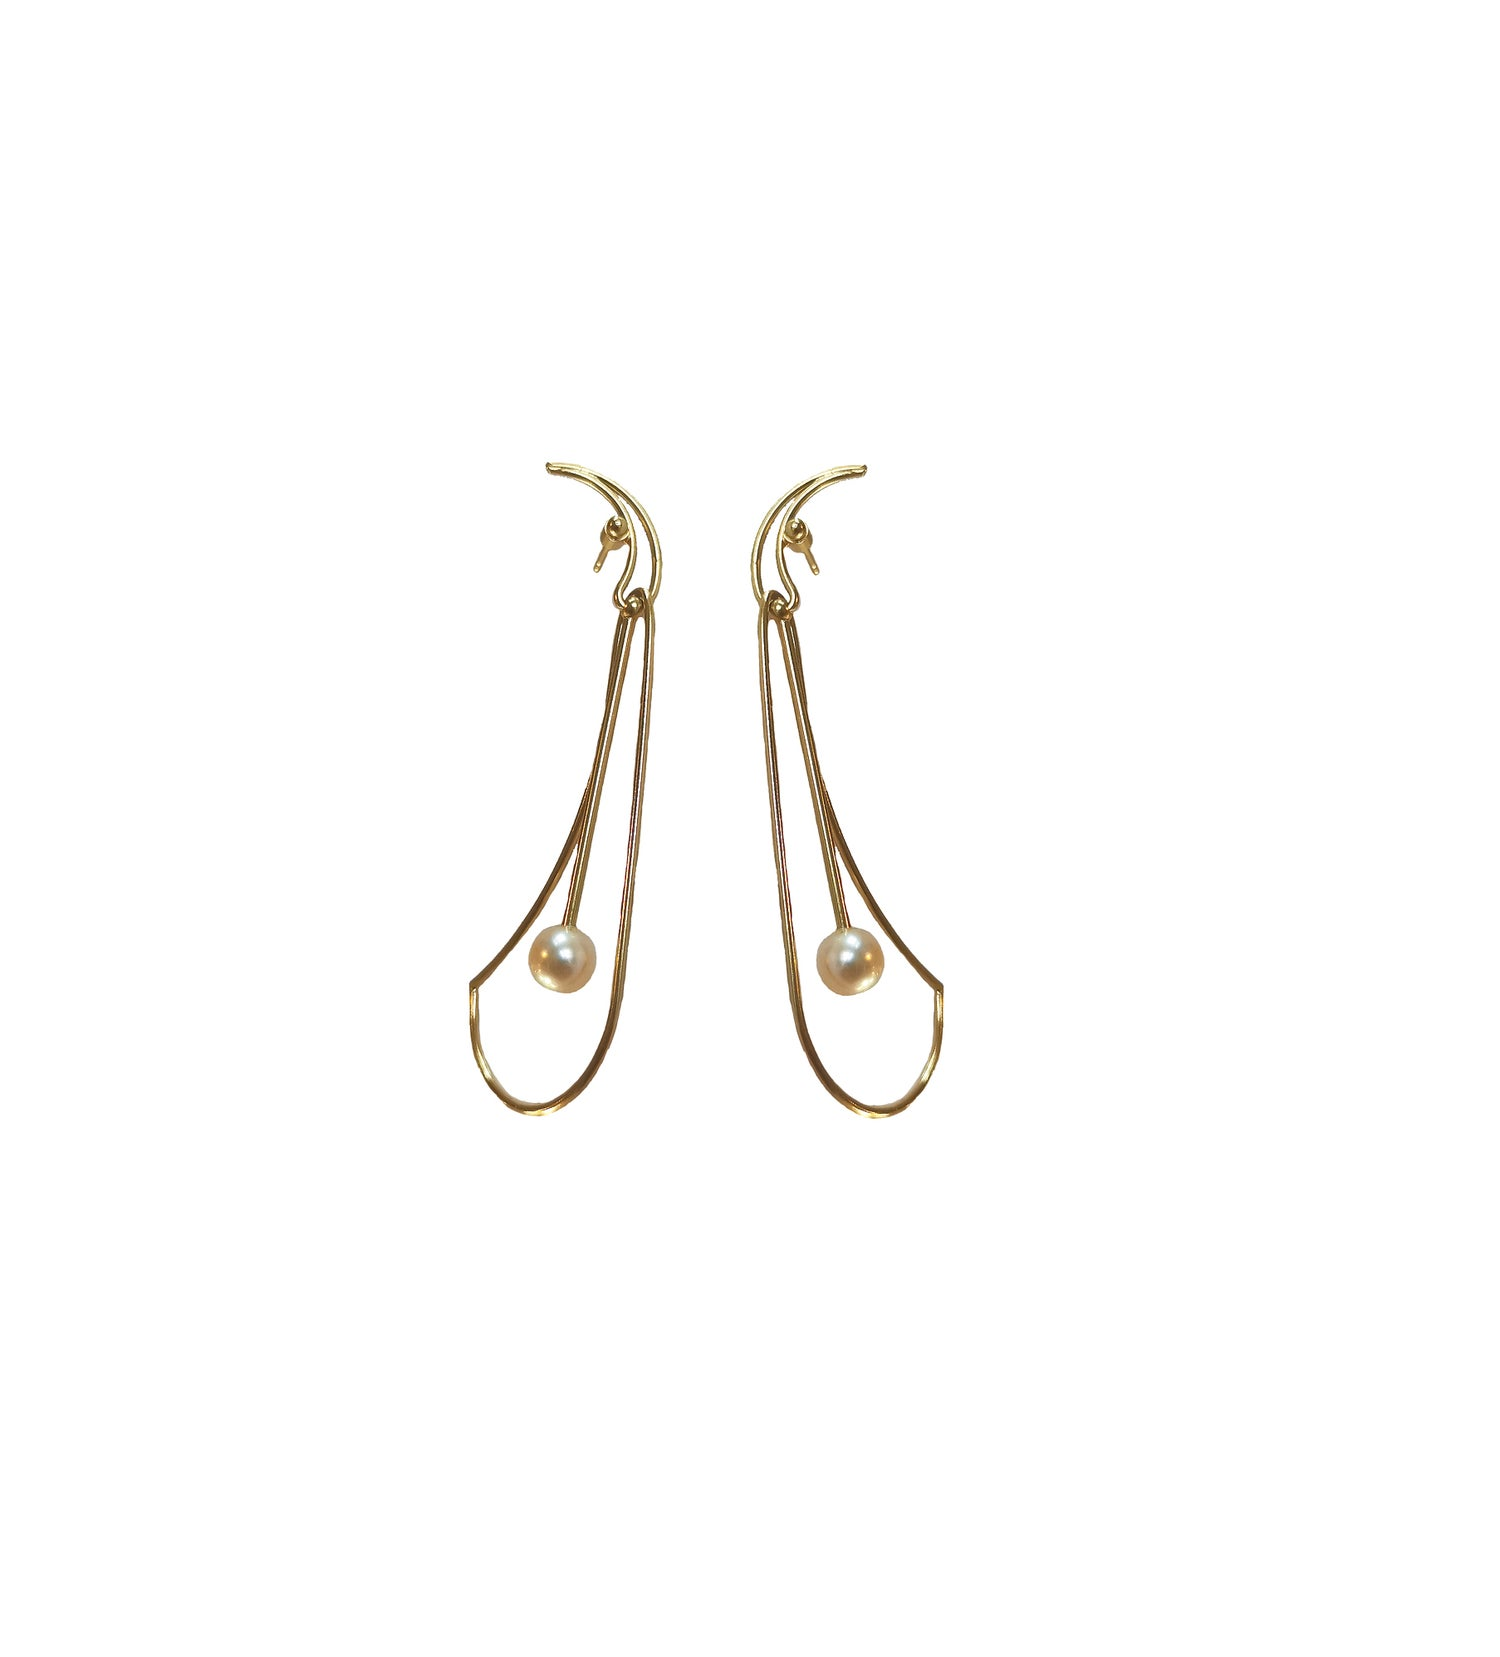 Image of Bobeche earring